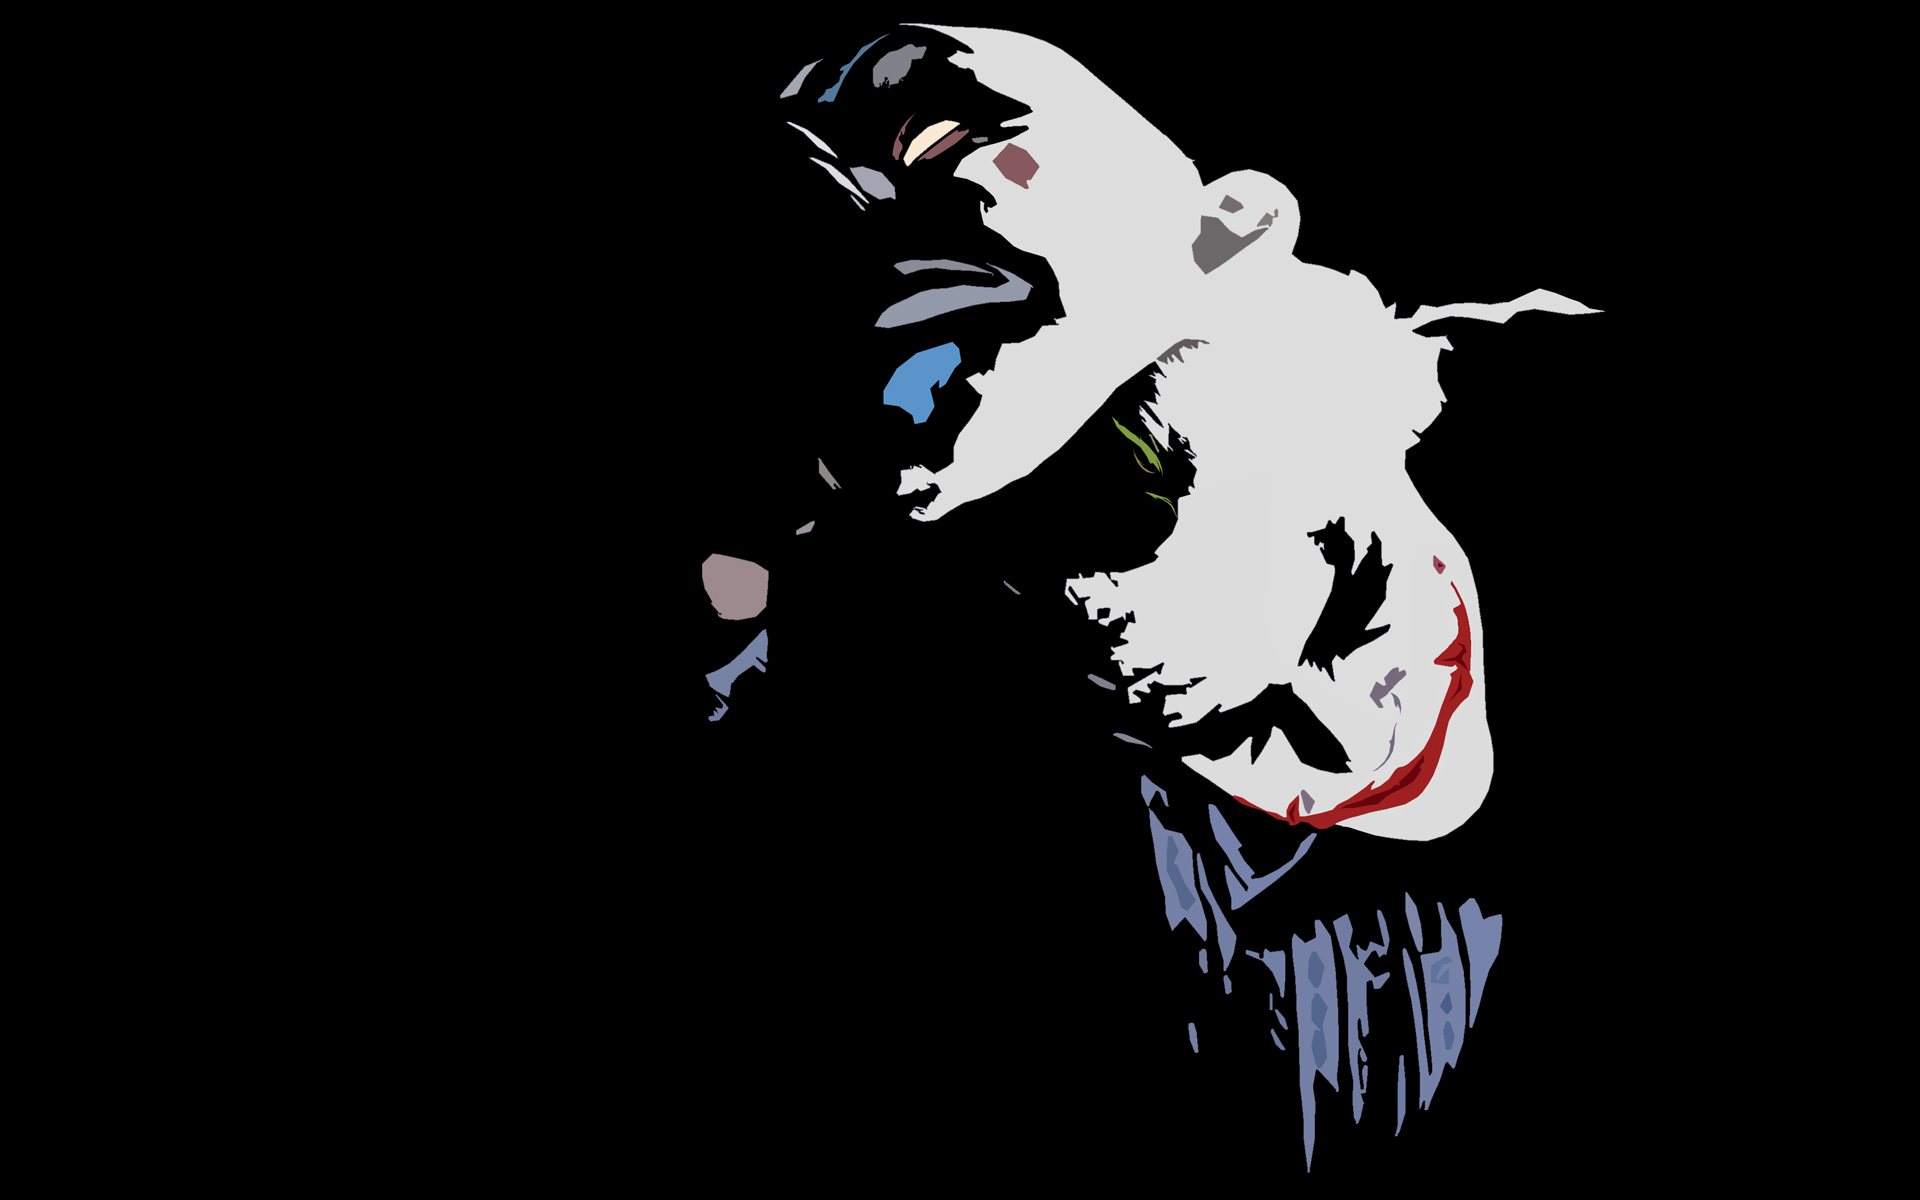 joker wallpaper   181803   High Quality and Resolution Wallpapers 1920x1200